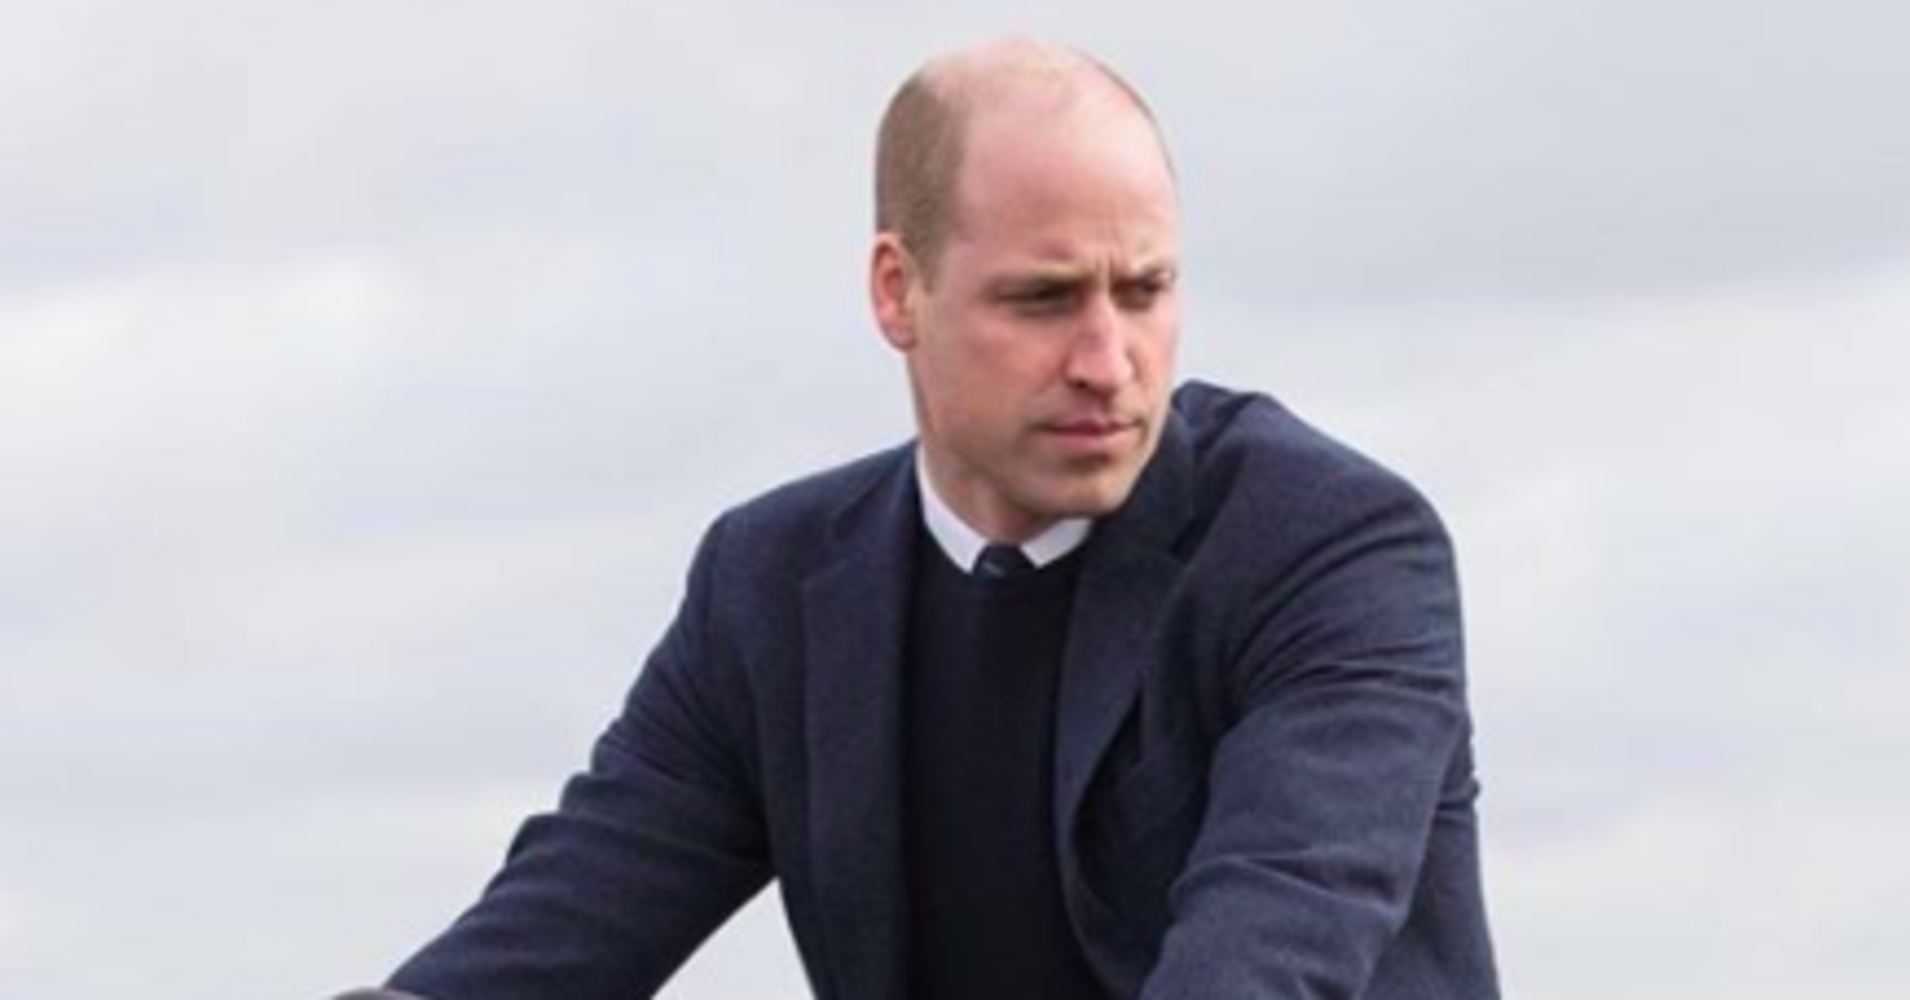 Prince William Rides A Motorcycle And Channels His Inner James Bond